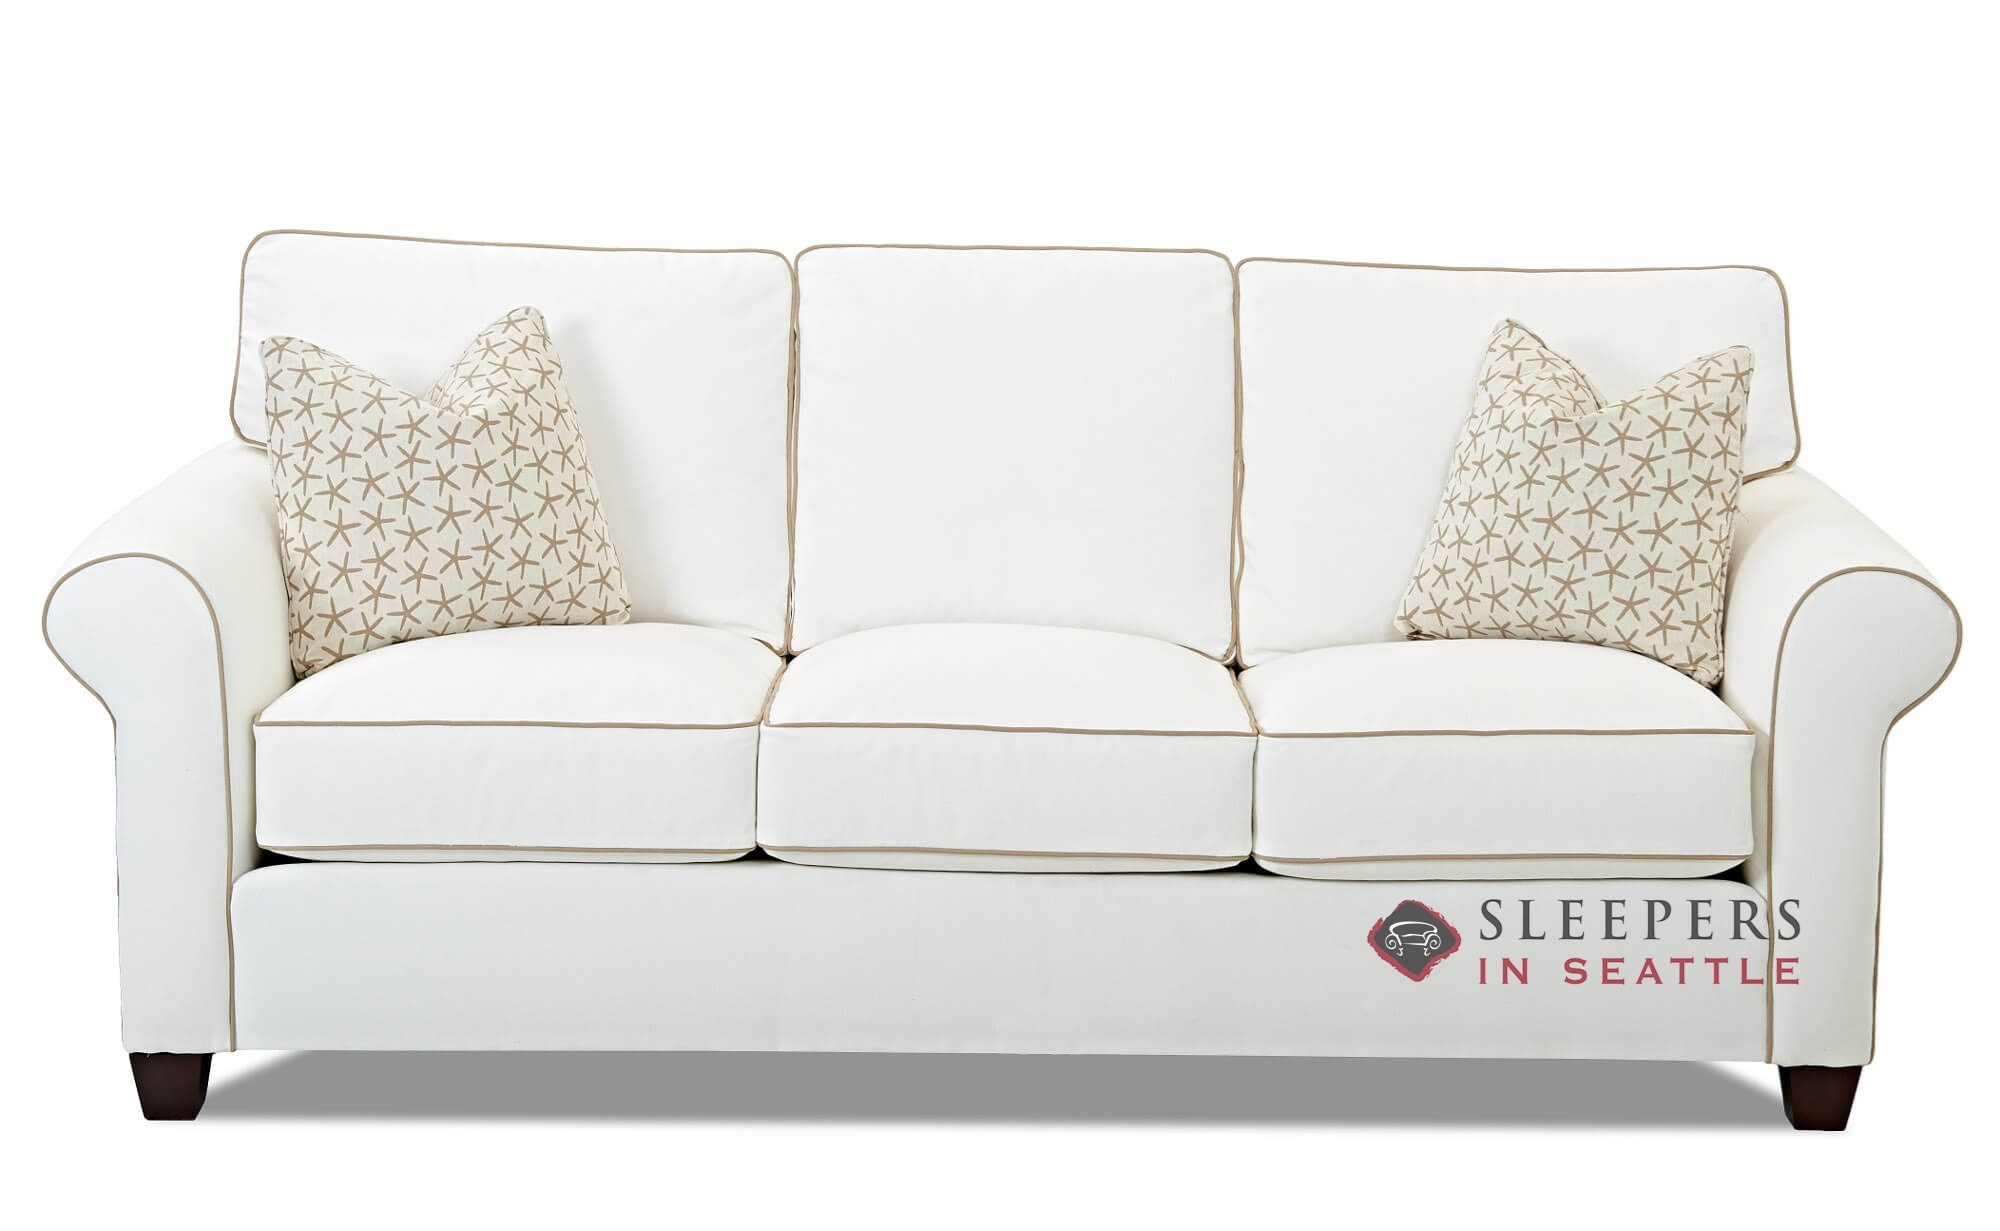 bed and sofa warehouse leeds marshmallow flip canada customize personalize by savvy queen fabric